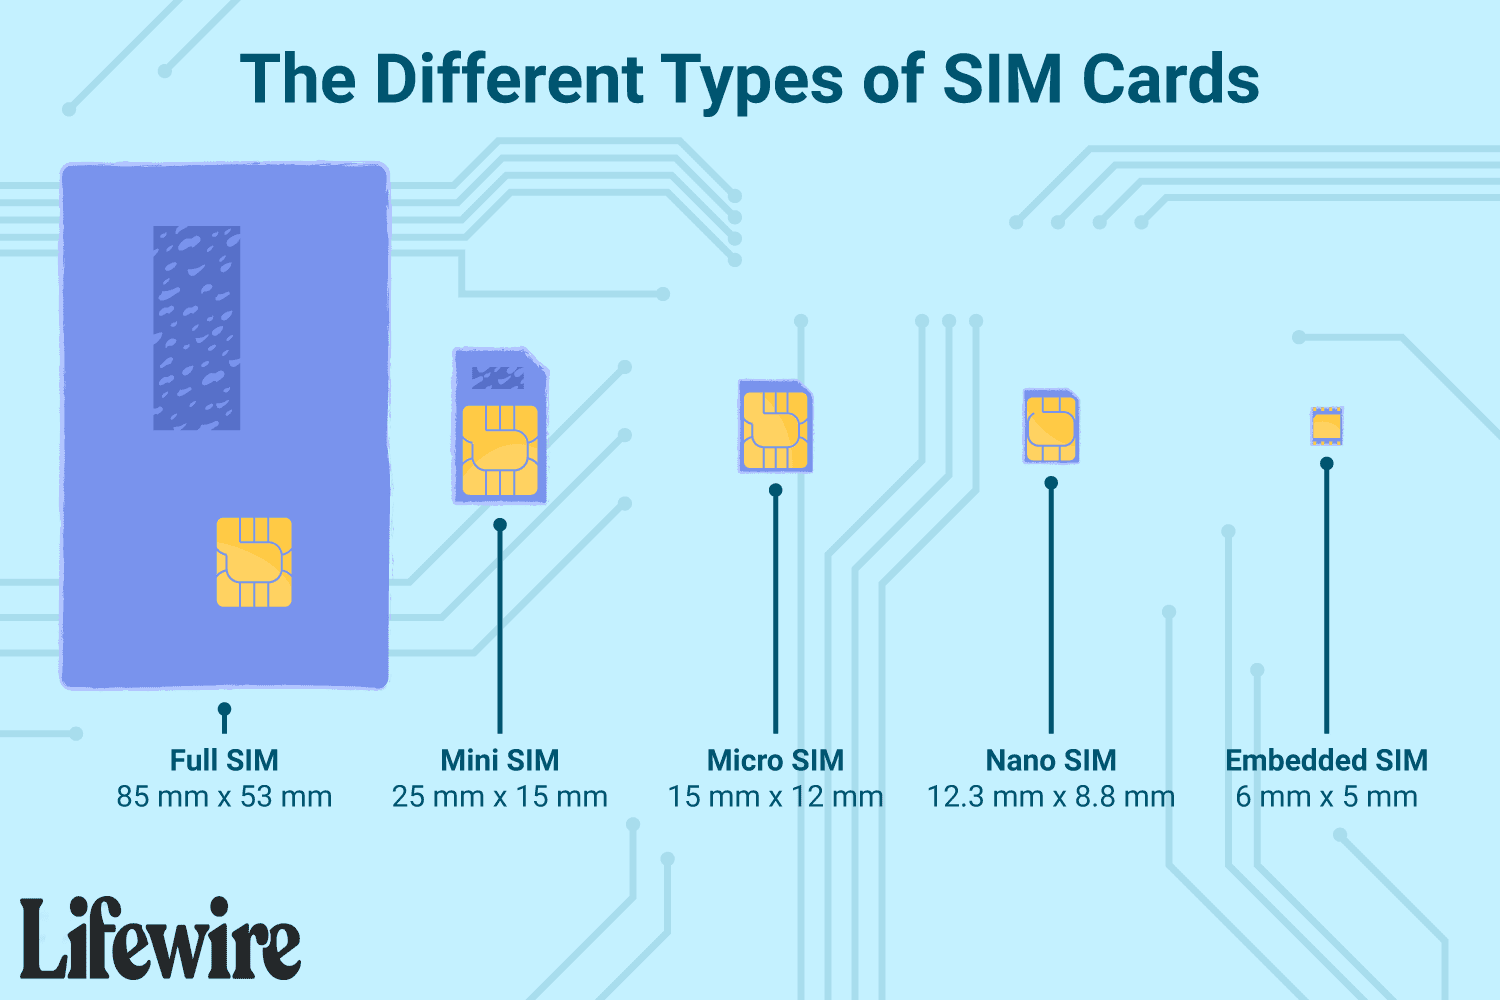 The different types of SIM cards